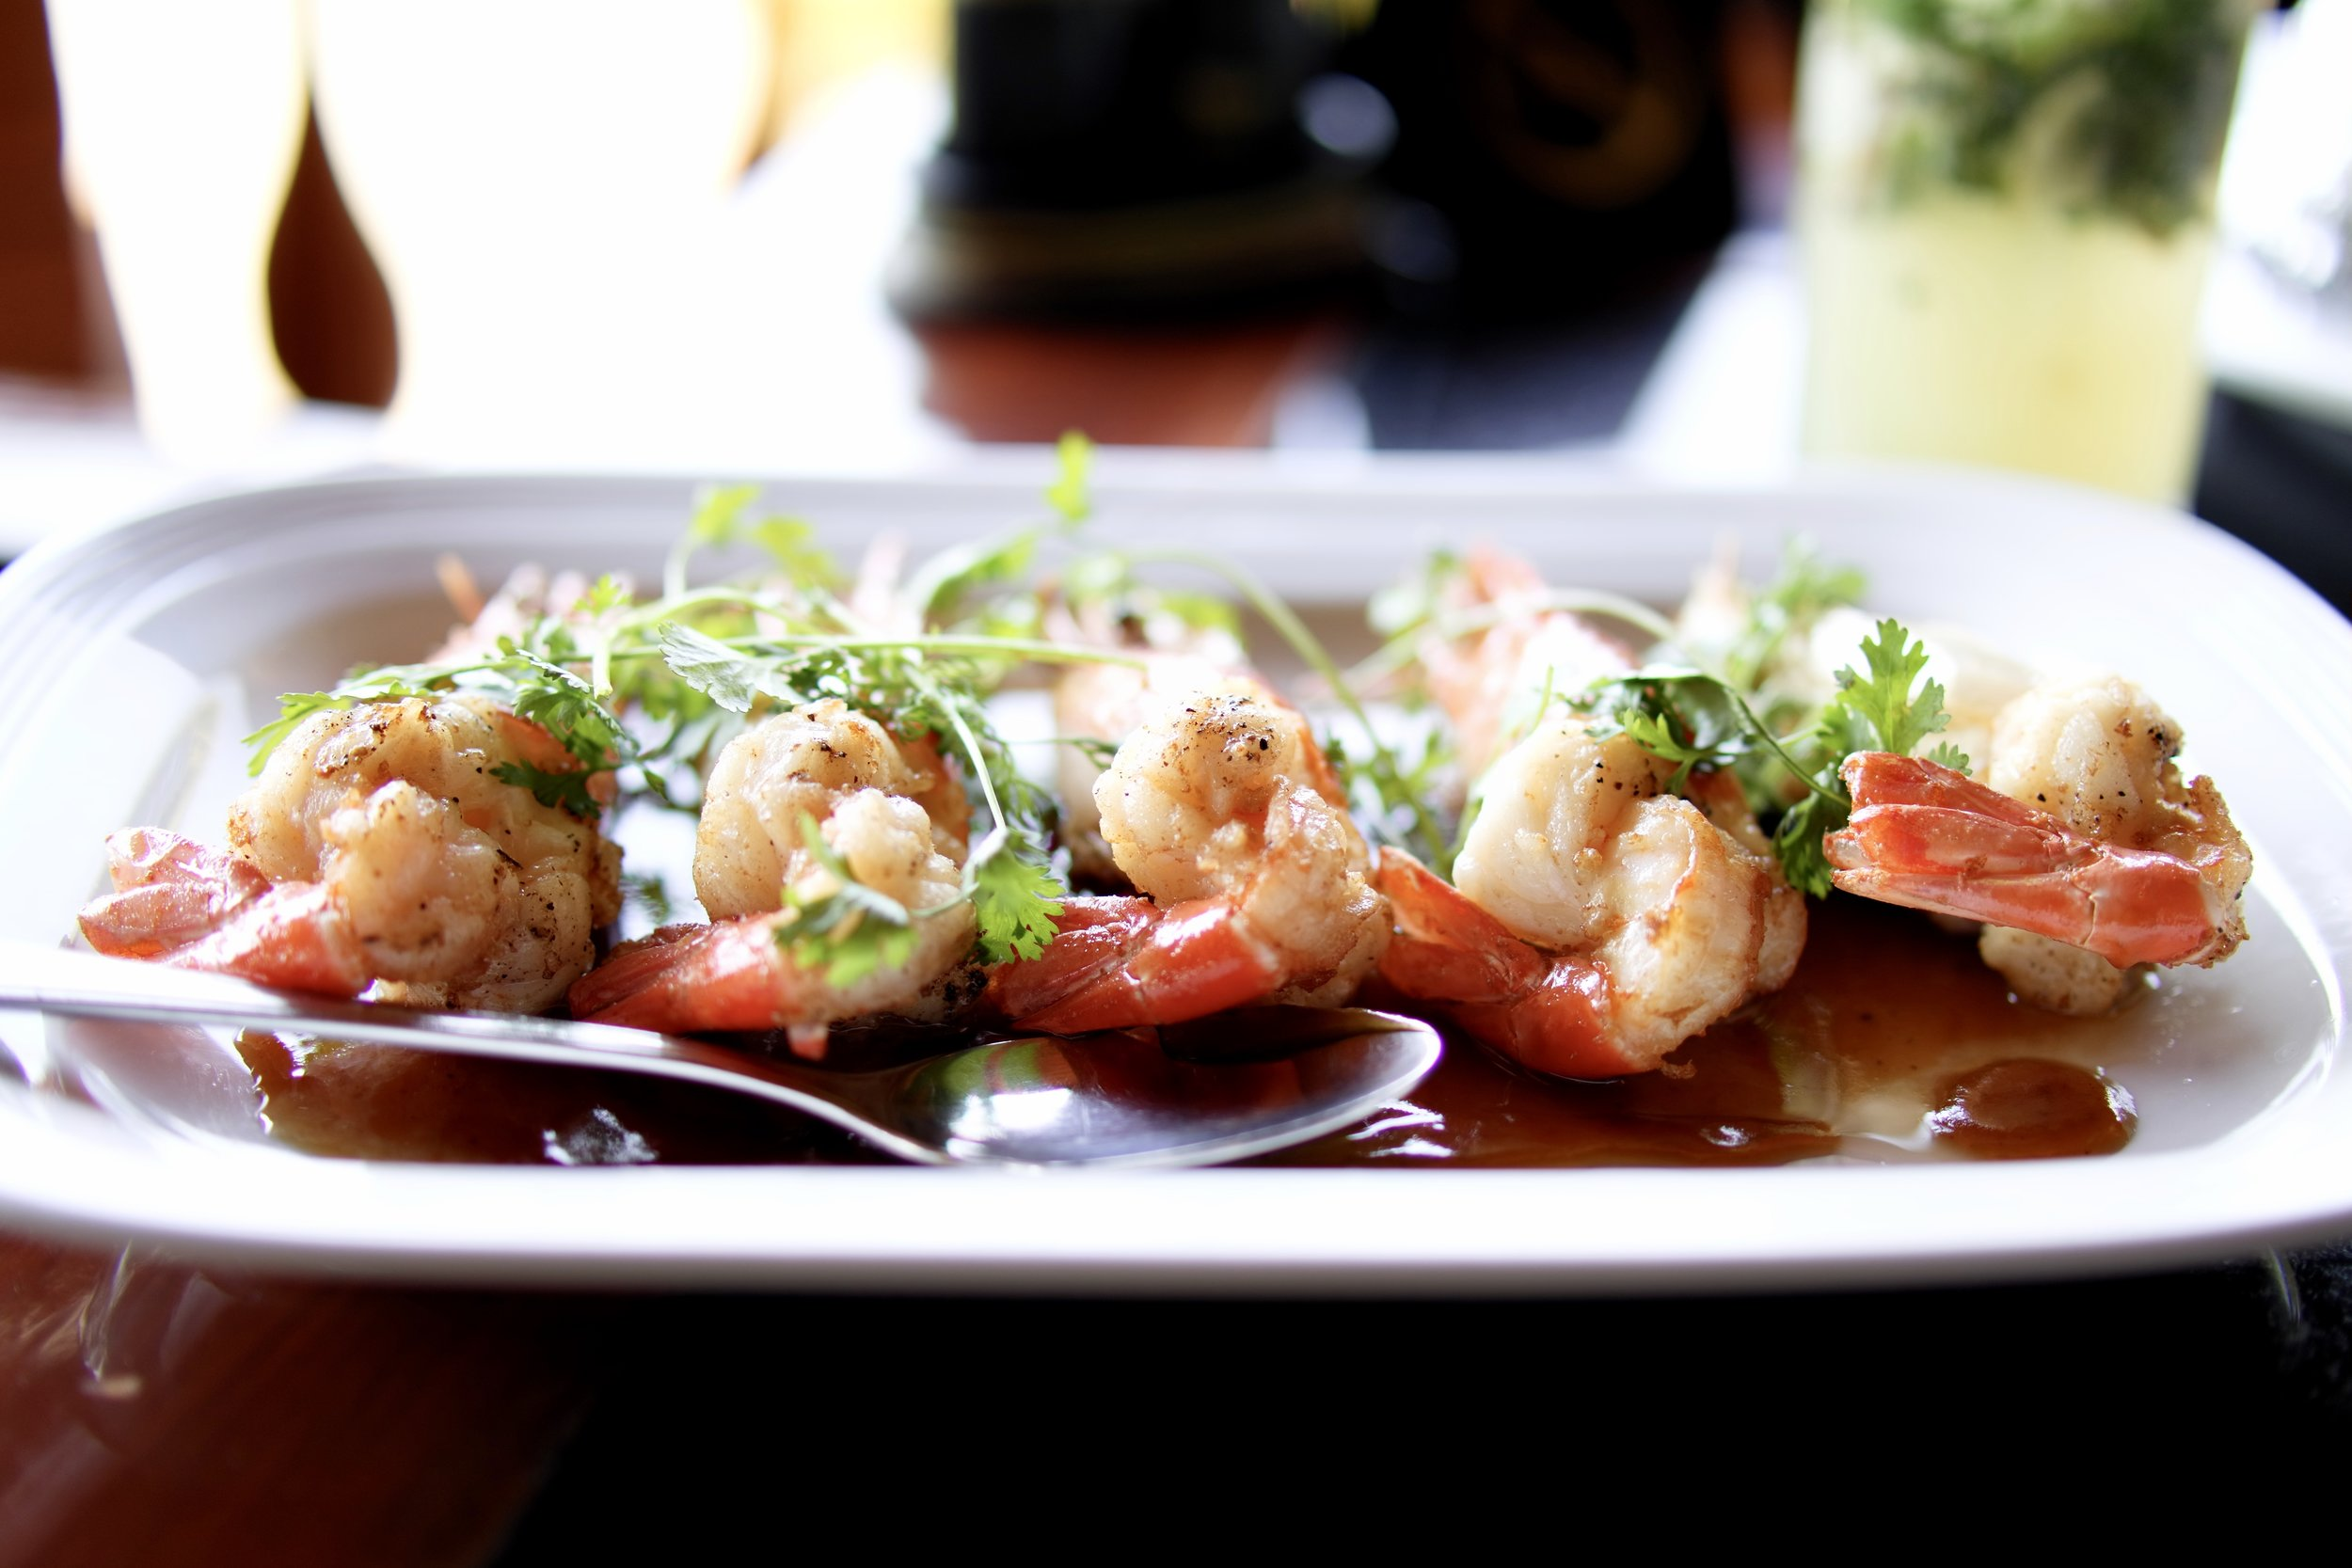 Visit the Oar House for tasty, freshly grilled prawns for lunch today.